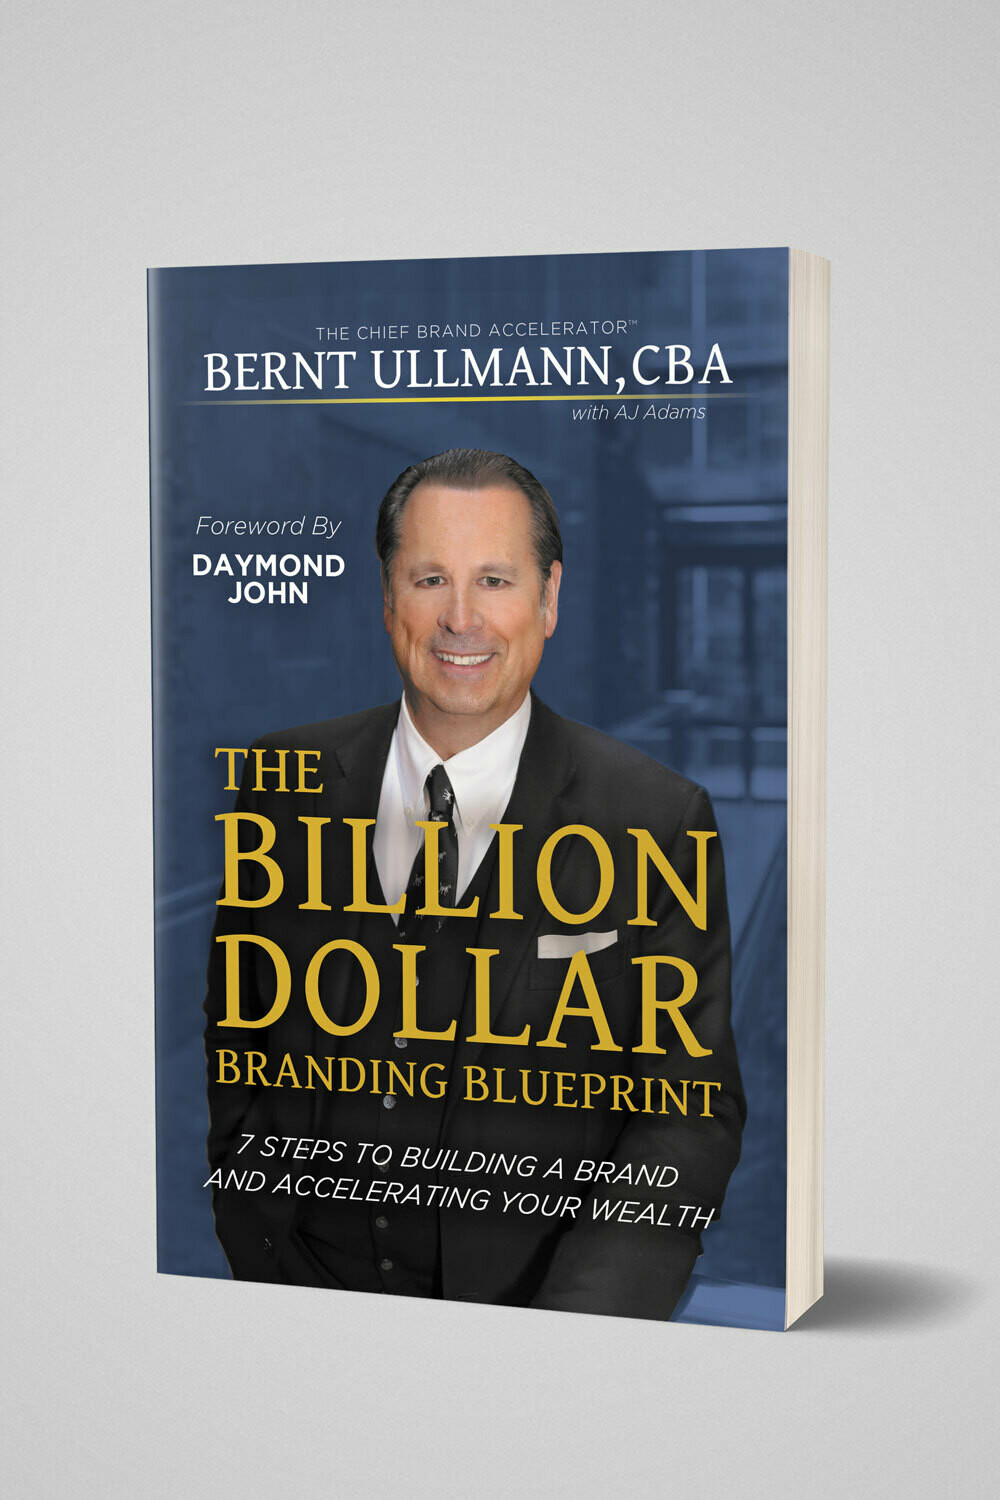 The Billion Dollar Branding Blueprint